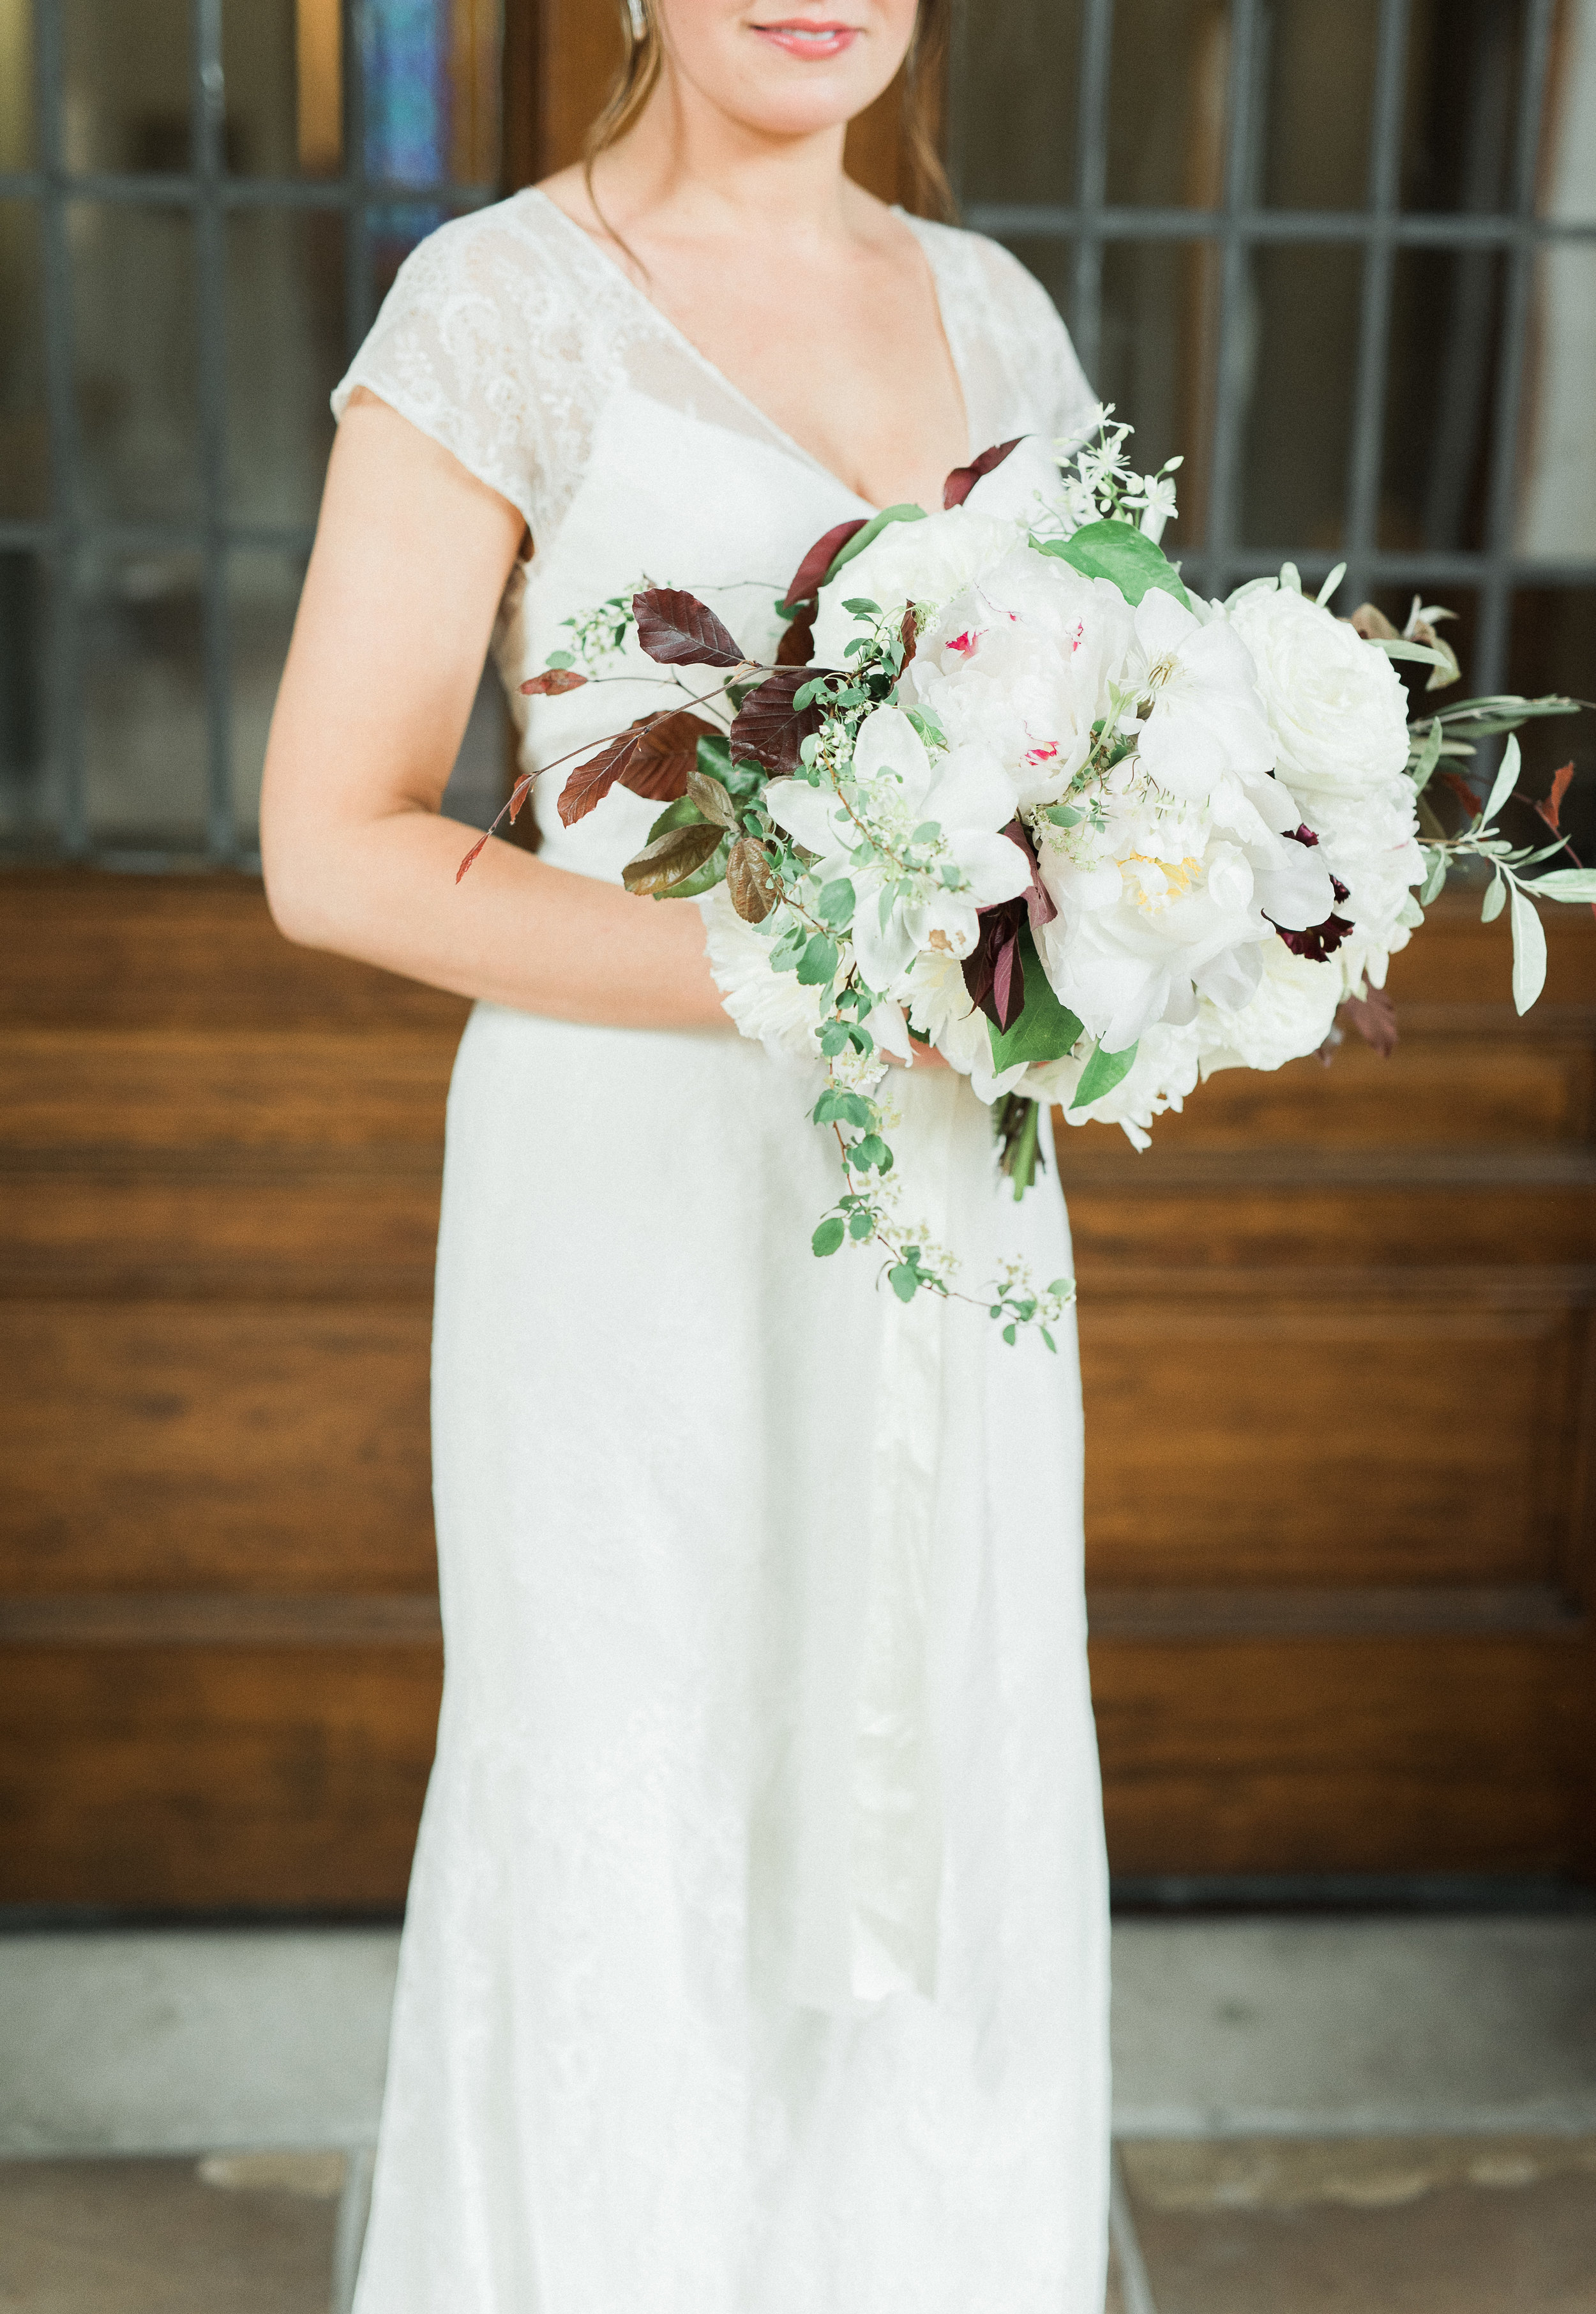 Belle Meade Country Club - Nashville, TN - Best Dresses of 2017